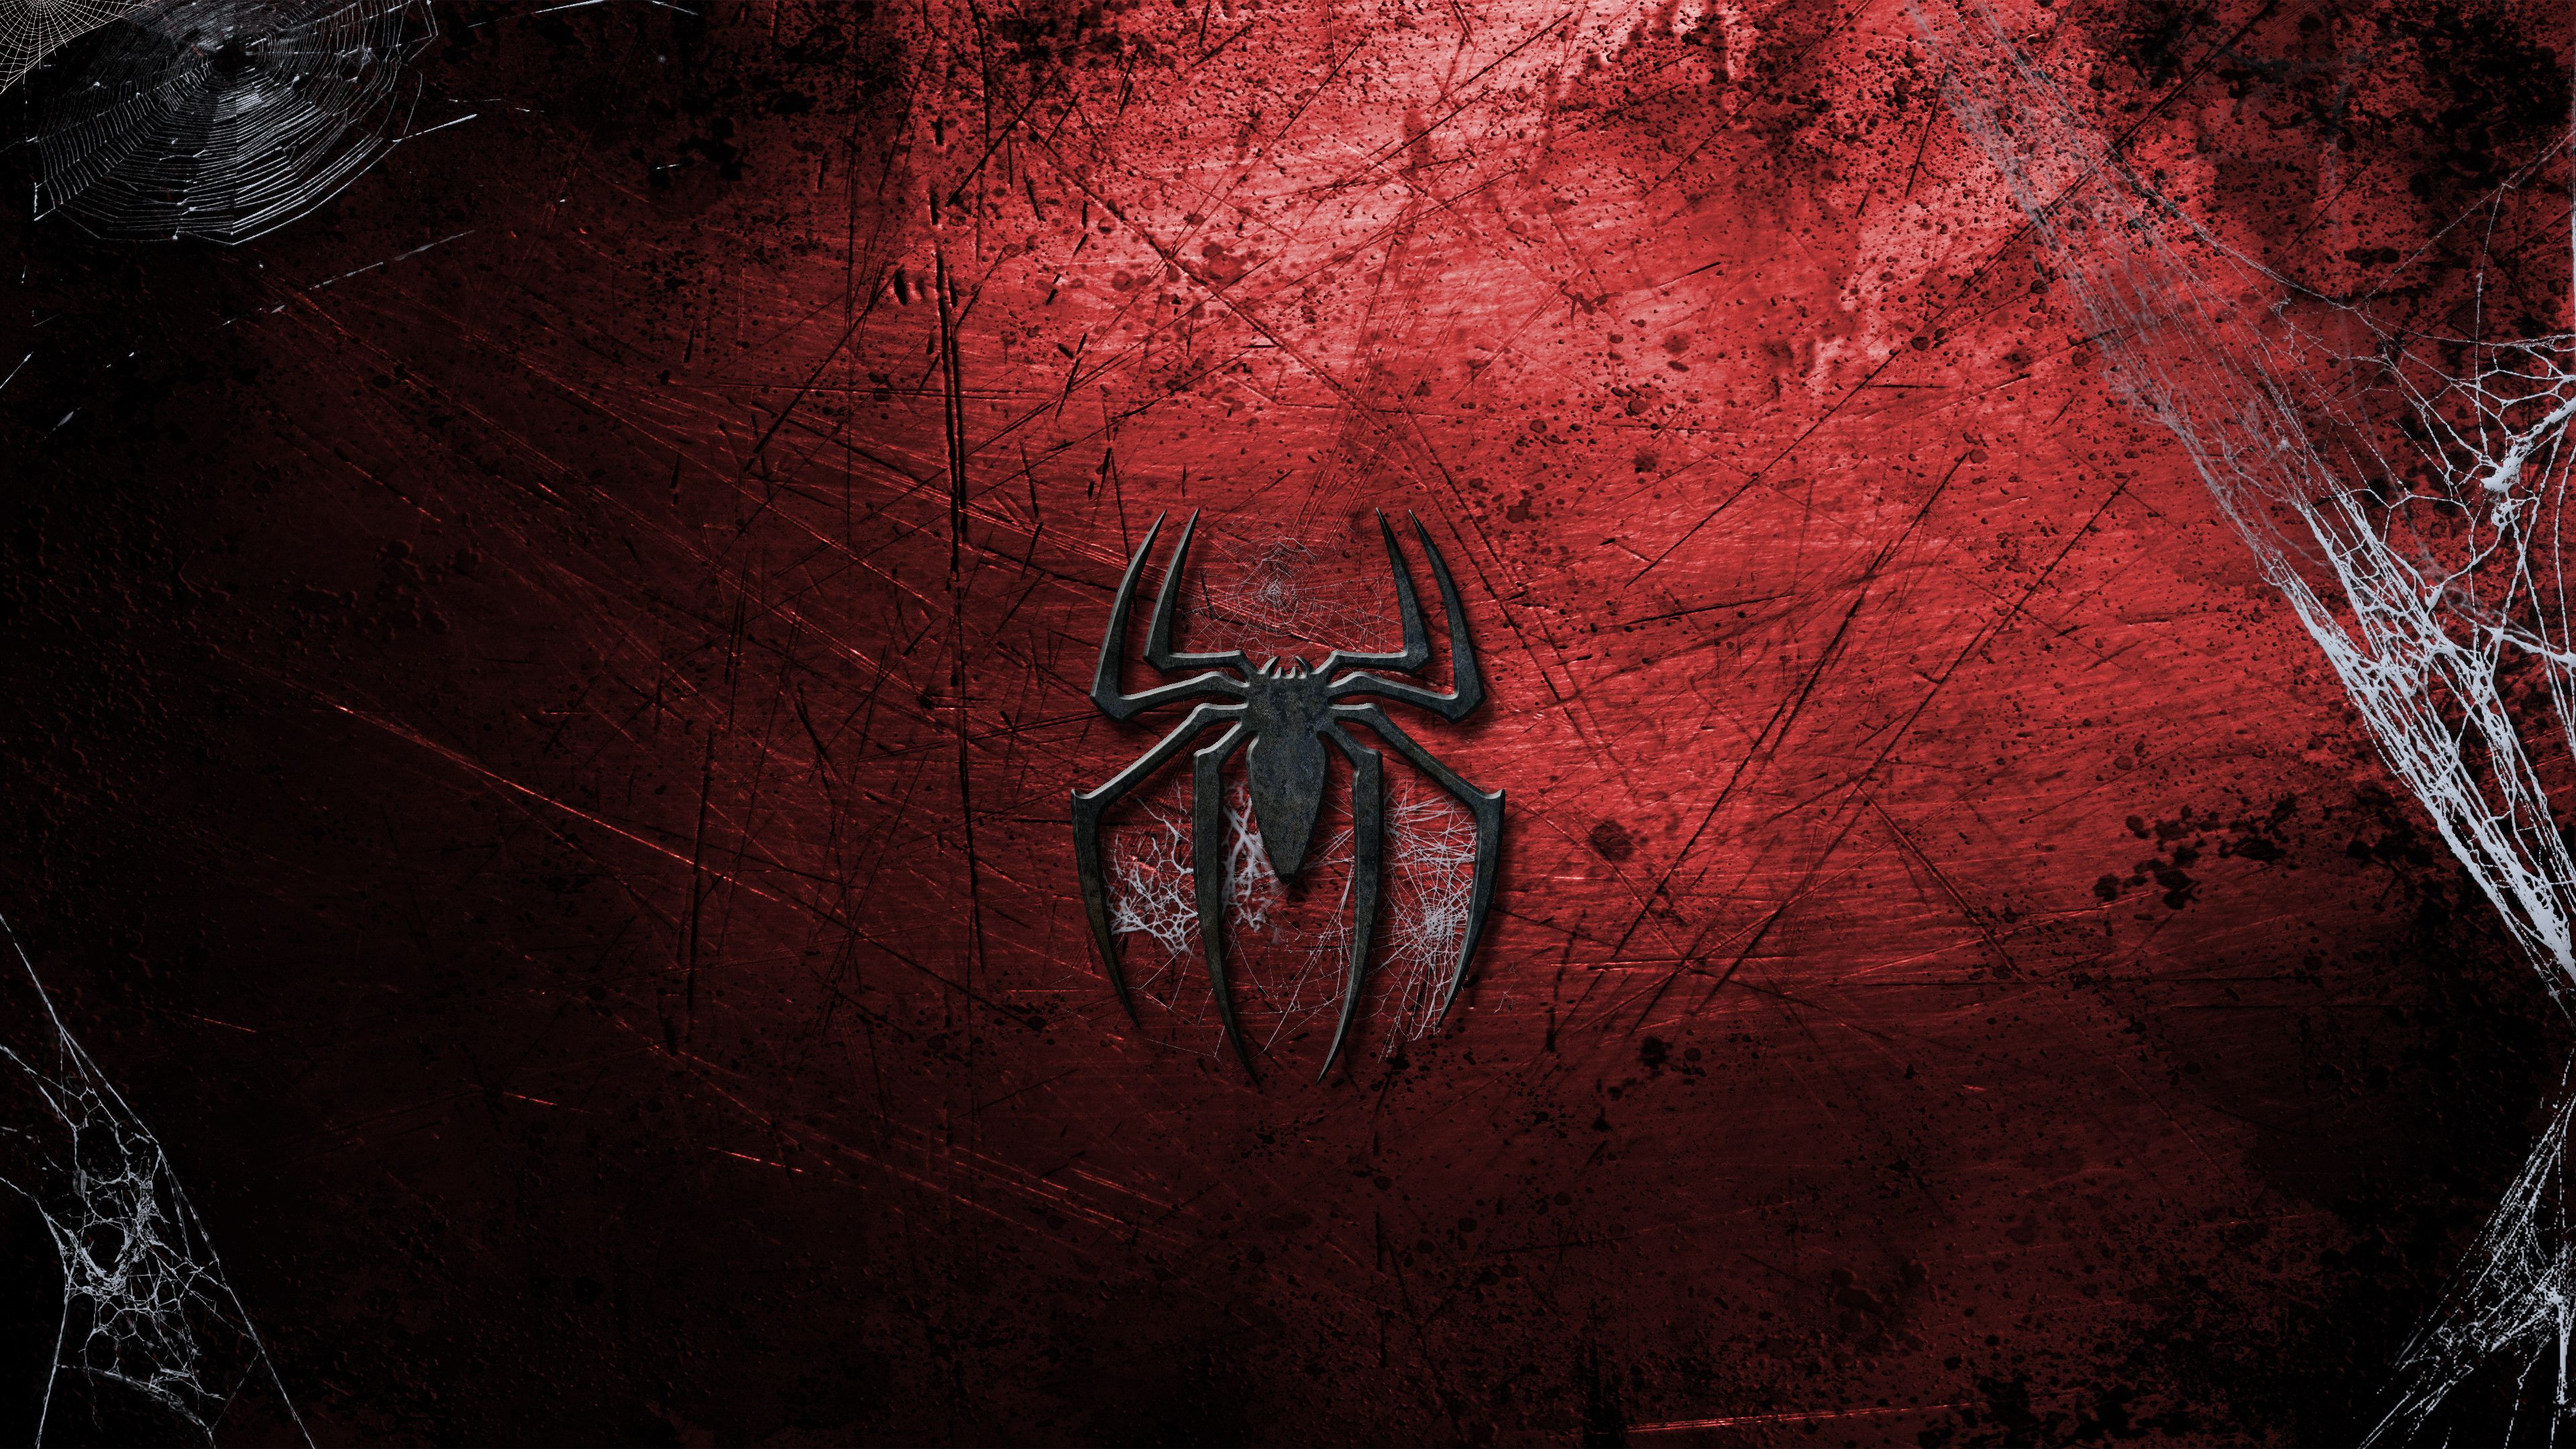 Spiderman Logo Wallpaper Hd Resolution Aqf Marvel Images Dc Comics Wallpaper Marvel Comics Wallpaper